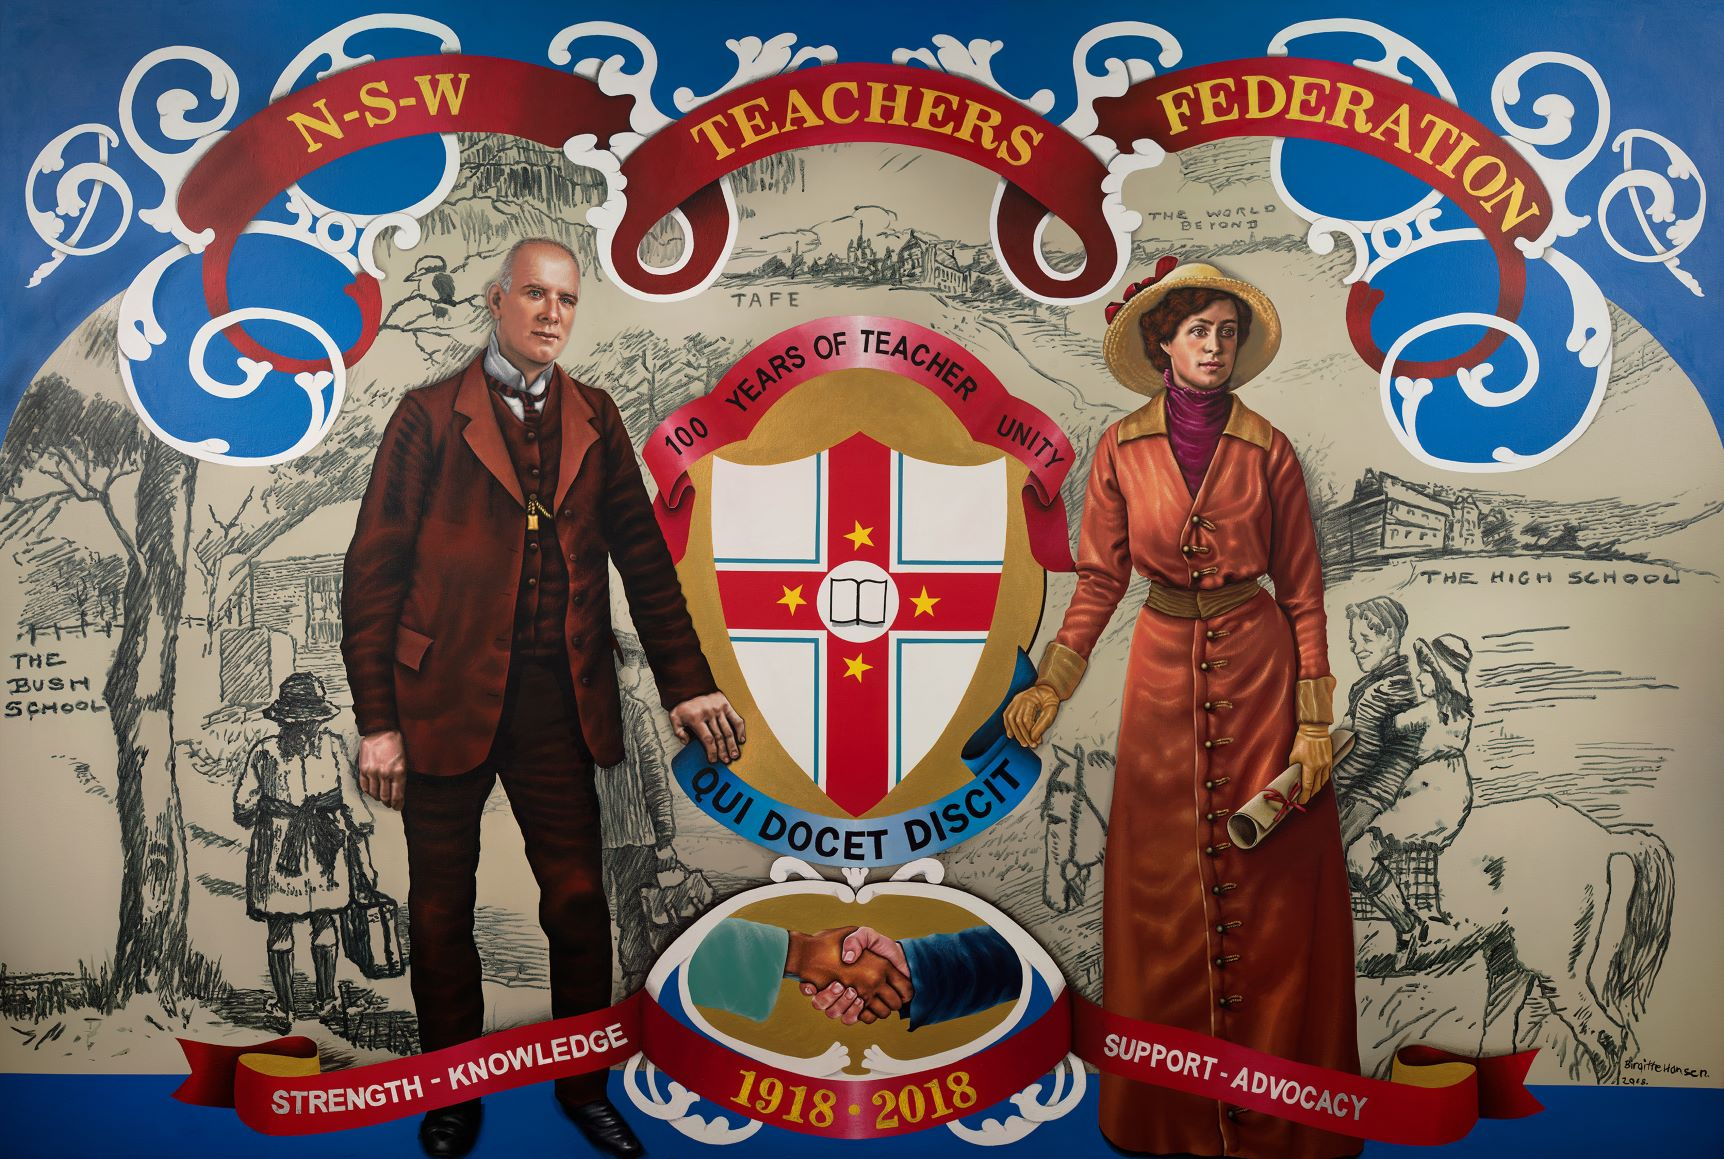 NSWTF Centennial Marching Banner. NSW Teachers Federation Collection